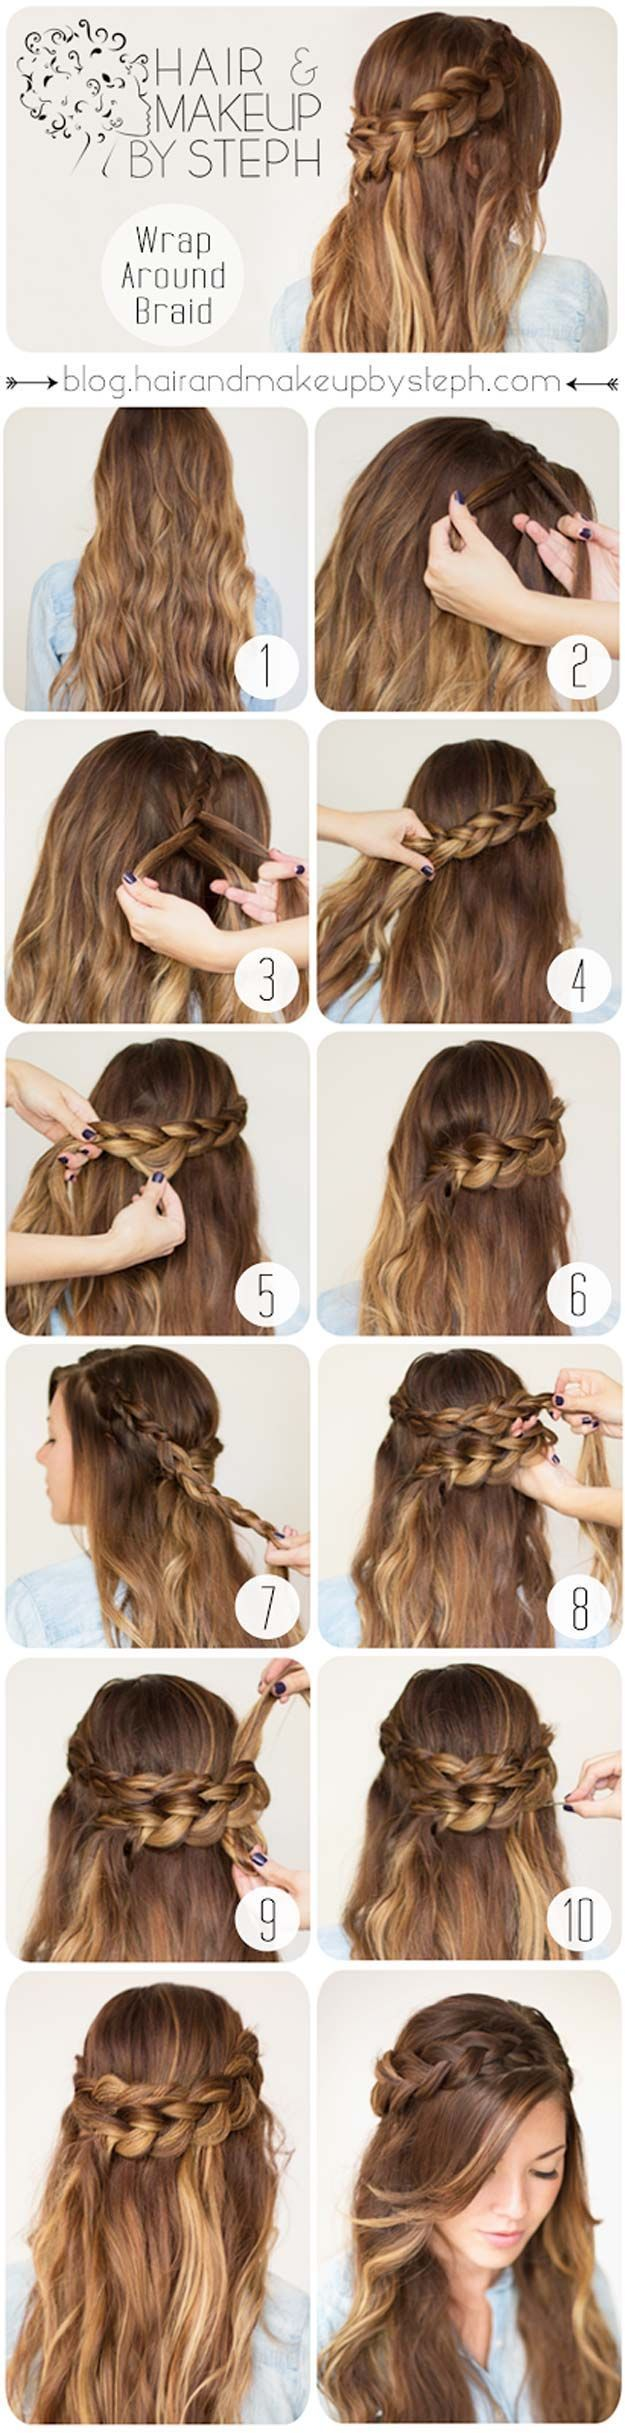 Easy hairstyles for work wrap around braid quick and easy